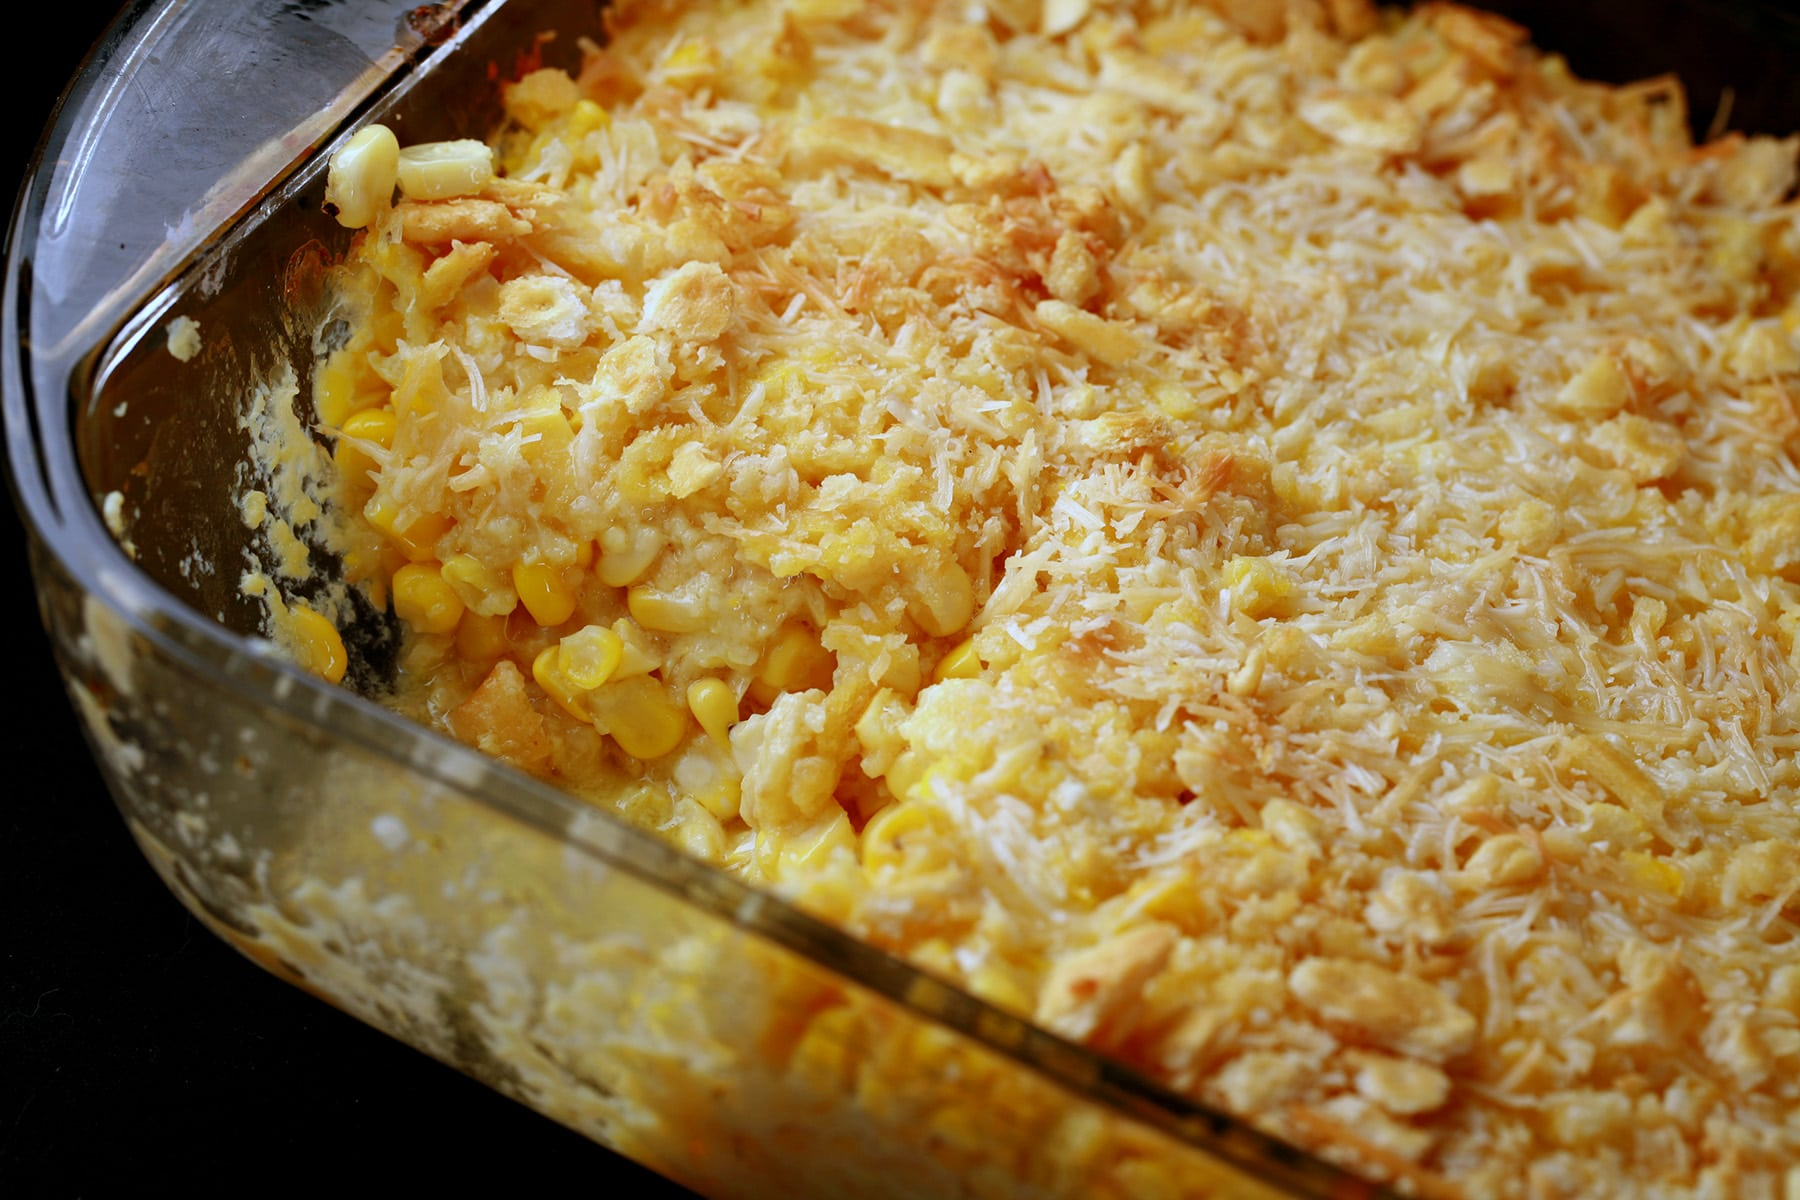 A pan of baked scalloped sweet corn. It has a golden brown crust of cheese and crackers on top.